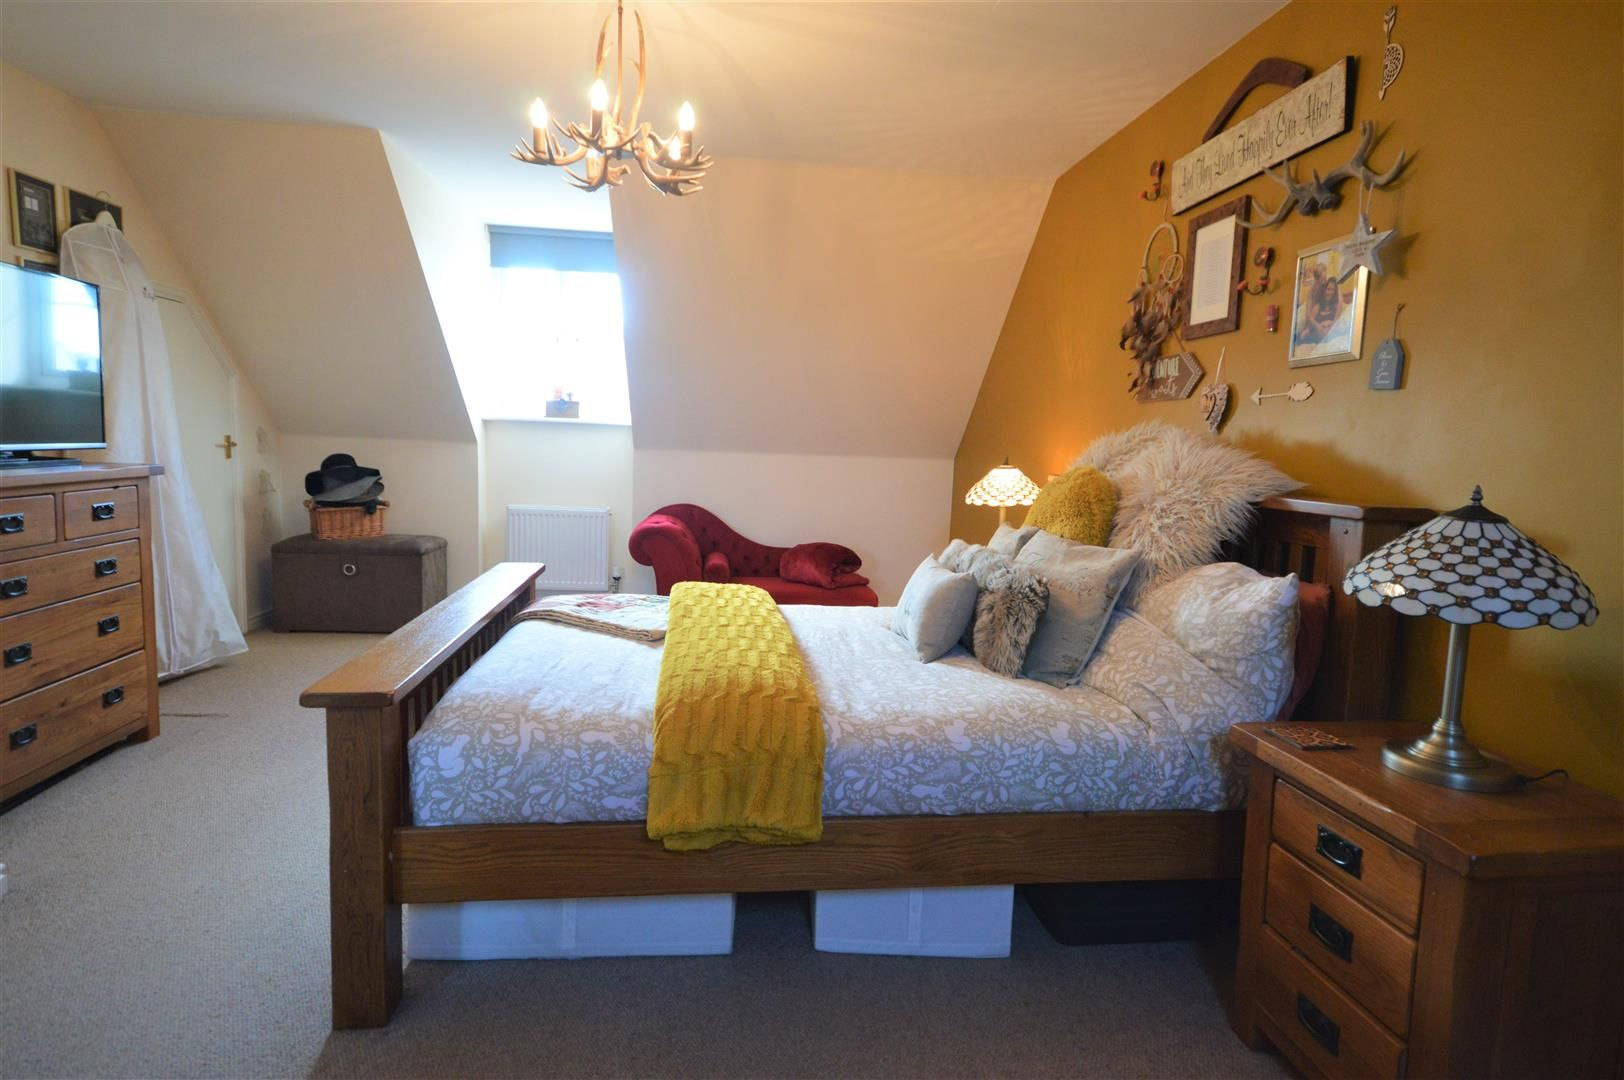 4 bed semi-detached for sale in Leominster  - Property Image 16